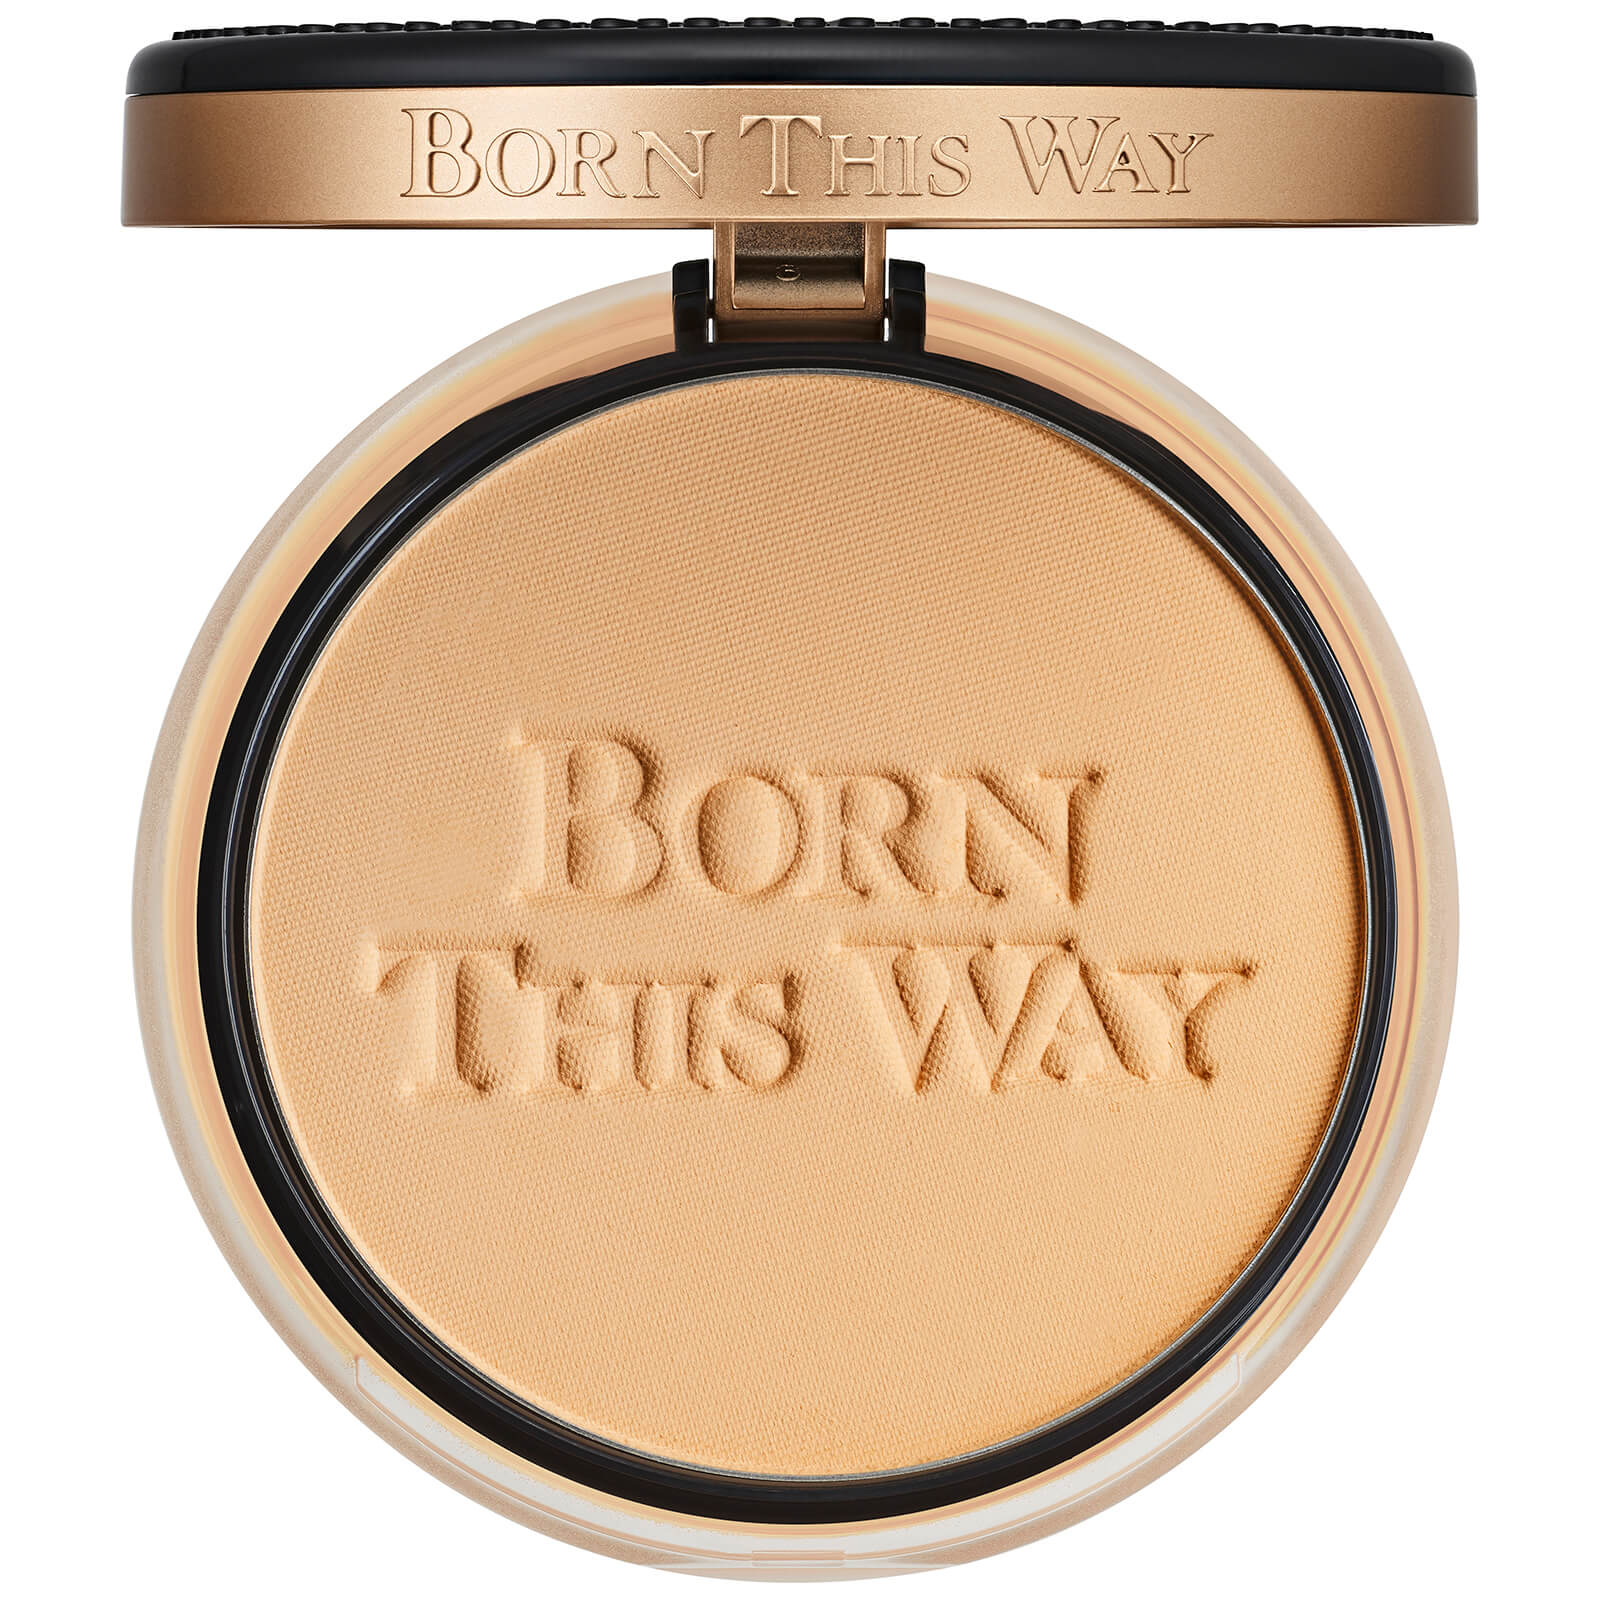 Too Faced Born This Way Multi-Use Complexion Powder (Various Shades) - Light Beige